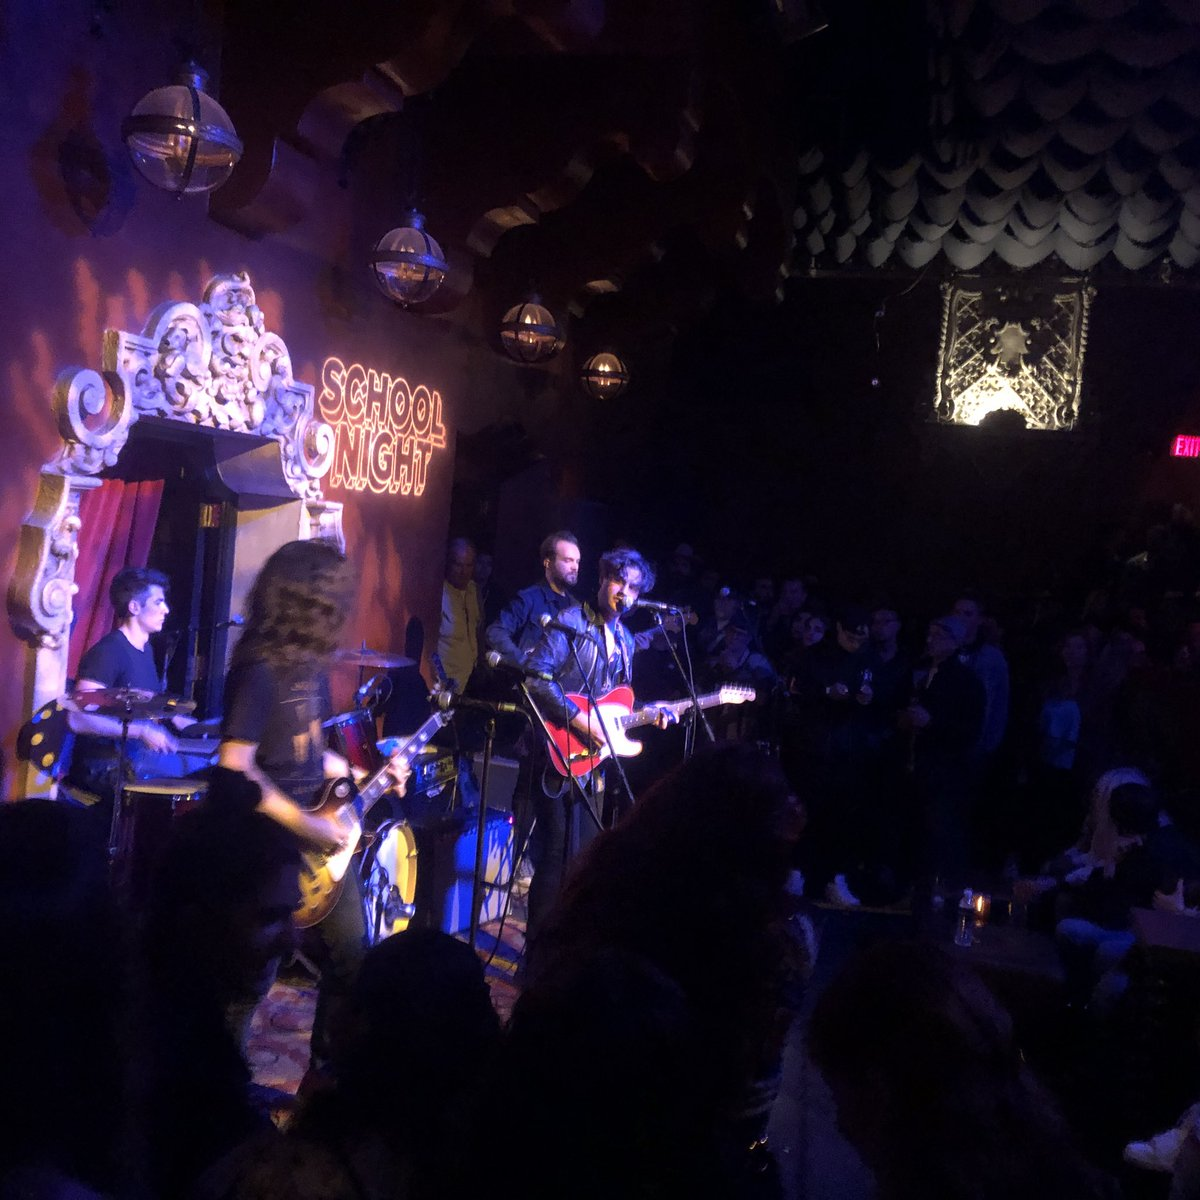 What a tight and groovy performance by new friends Dave Green and the Blinders  at @ItsASchoolNight last night! This guy is about to take over!! Rock n roll is back baby !! #livemusic #apa @apatouring #davegreen<br>http://pic.twitter.com/tcQEBPgiqA &ndash; à Bardot